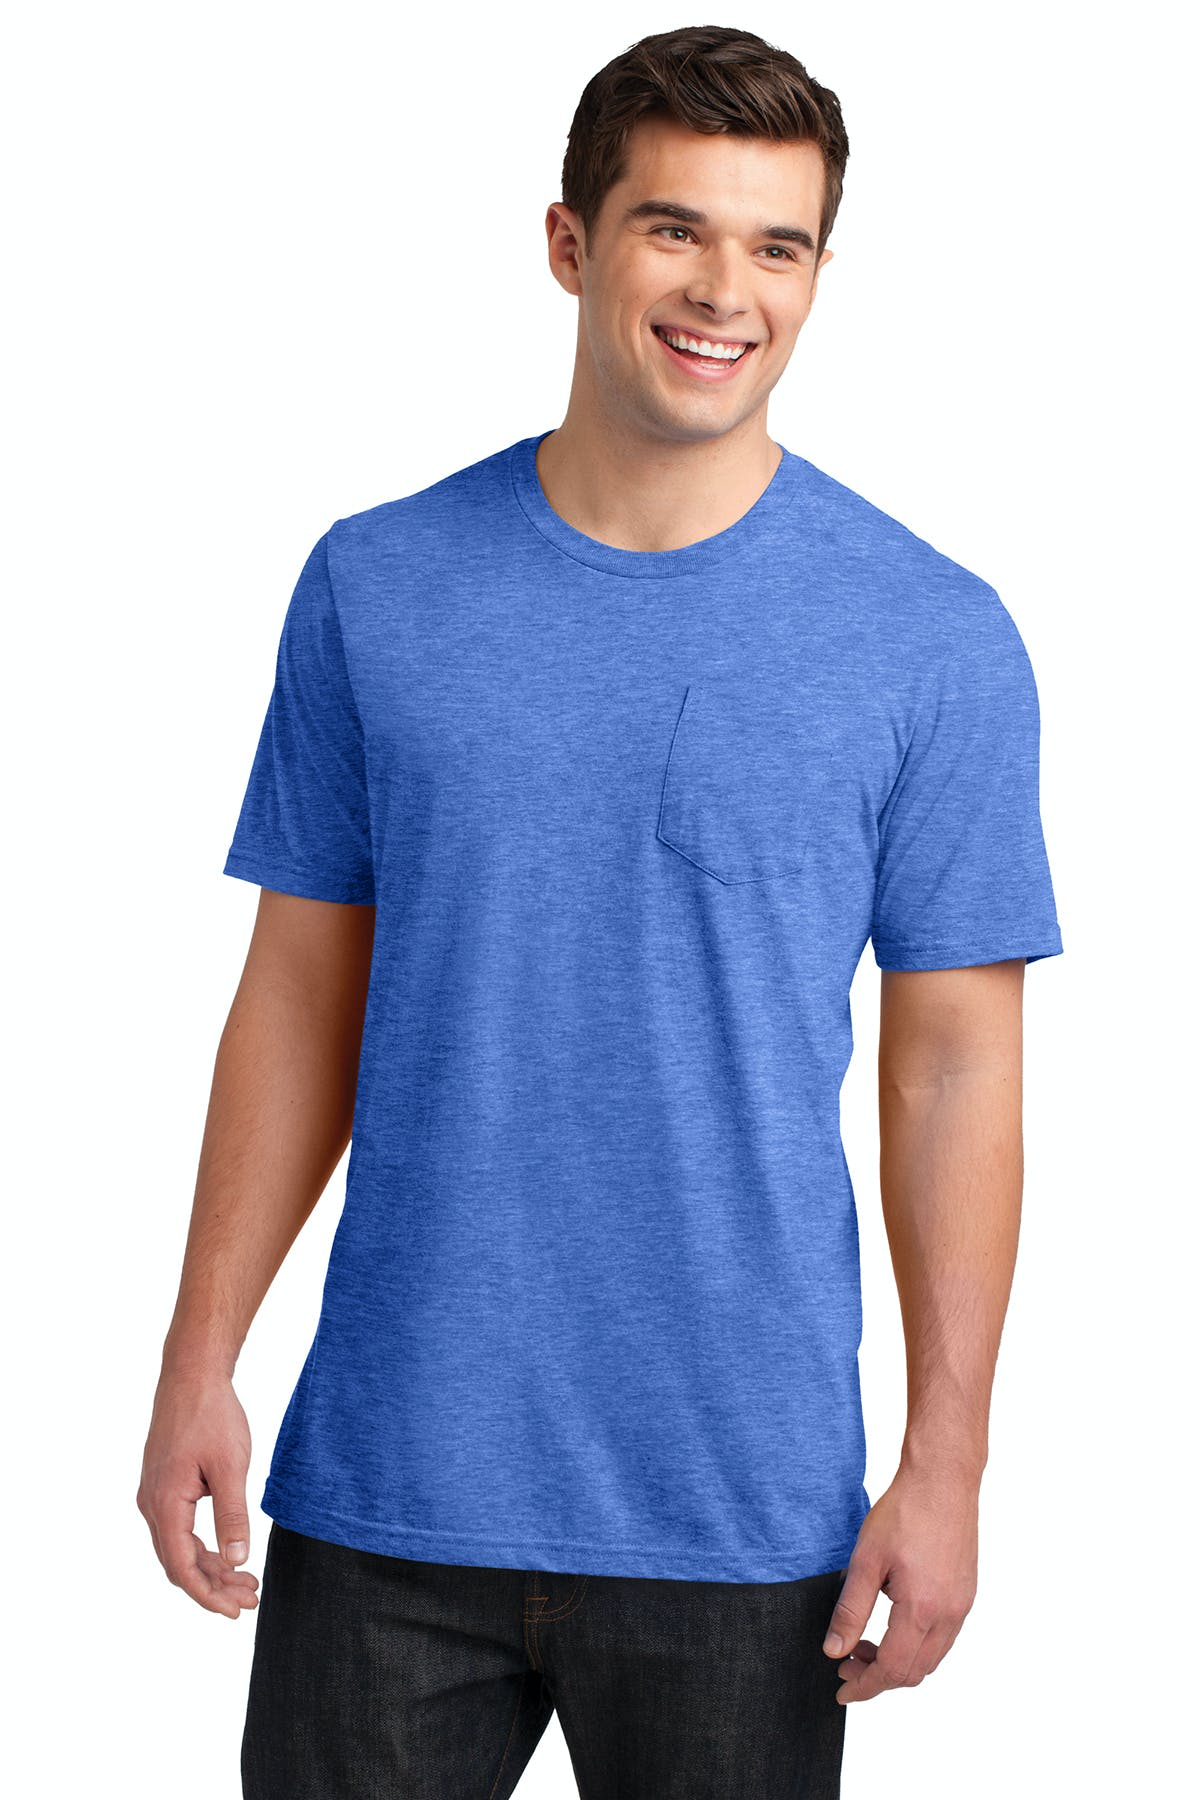 District® Young Mens Very Important Tee® with Pocket - sold by PRINT CITY GRAPHICS, INC